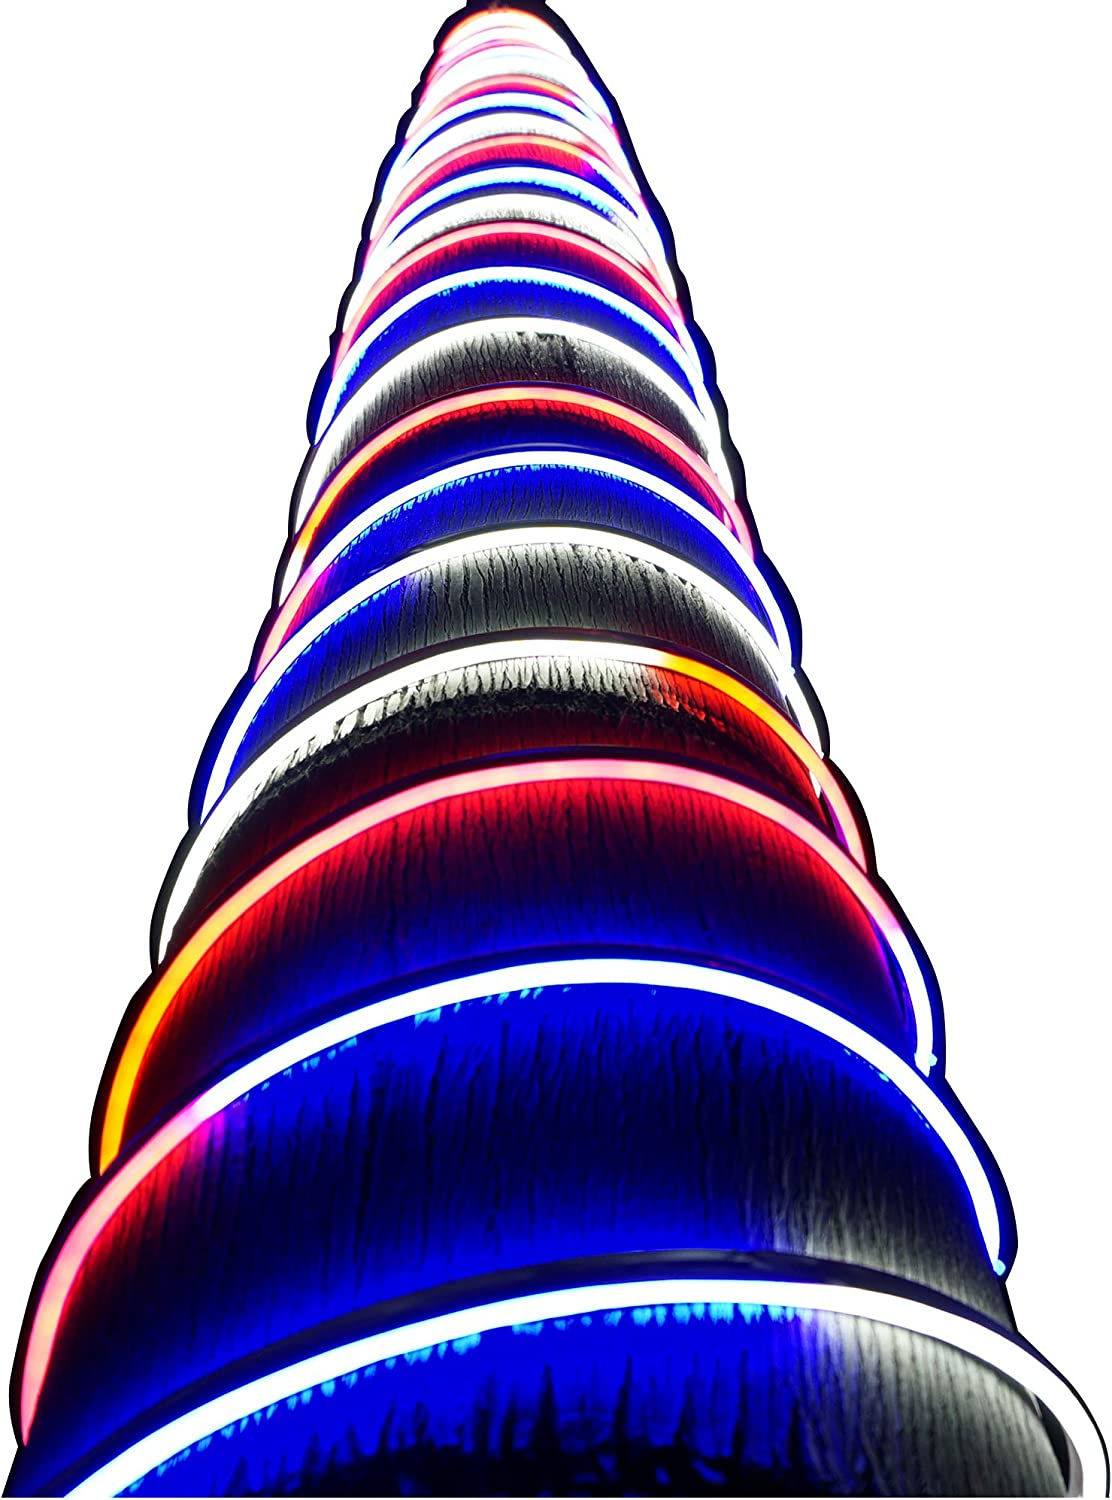 Russell Decor 30ft Red White Blue LED Neon Rope for 4th July Patriotic Memorial Day Patio Deck Waterproof SMD Tube Lights